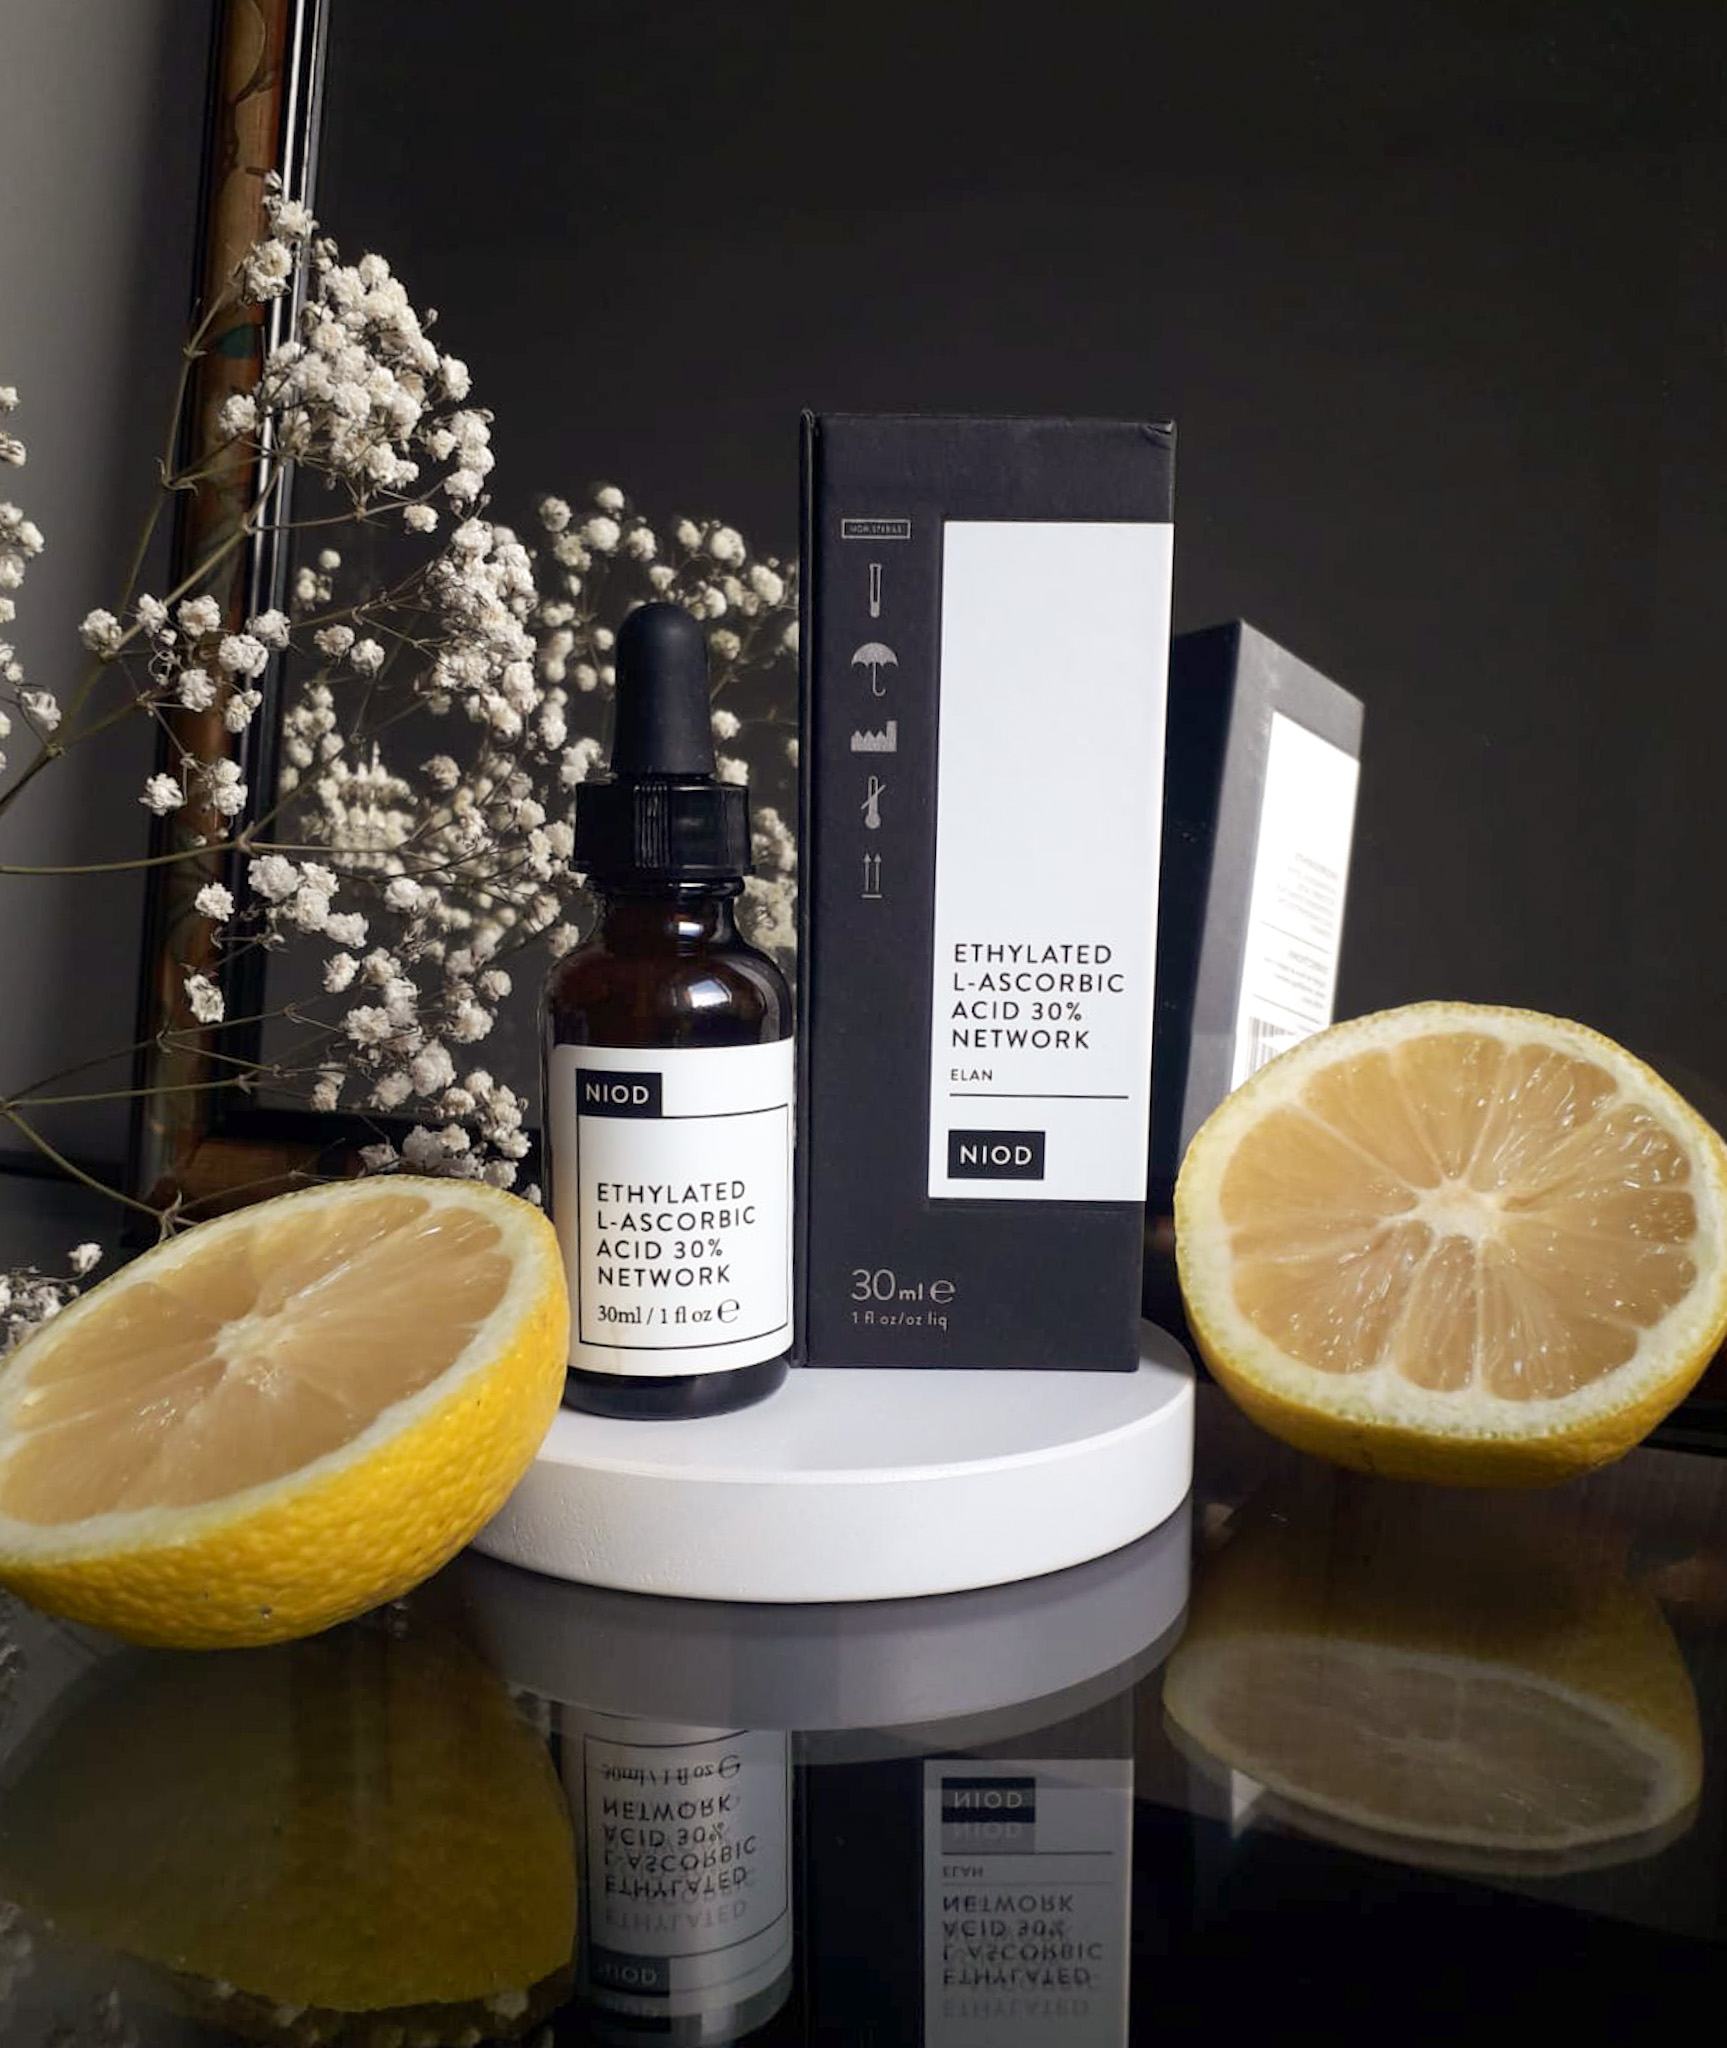 NIOD Ethylated L-Ascorbic Acid 30% Network_ELAN_Recenzija